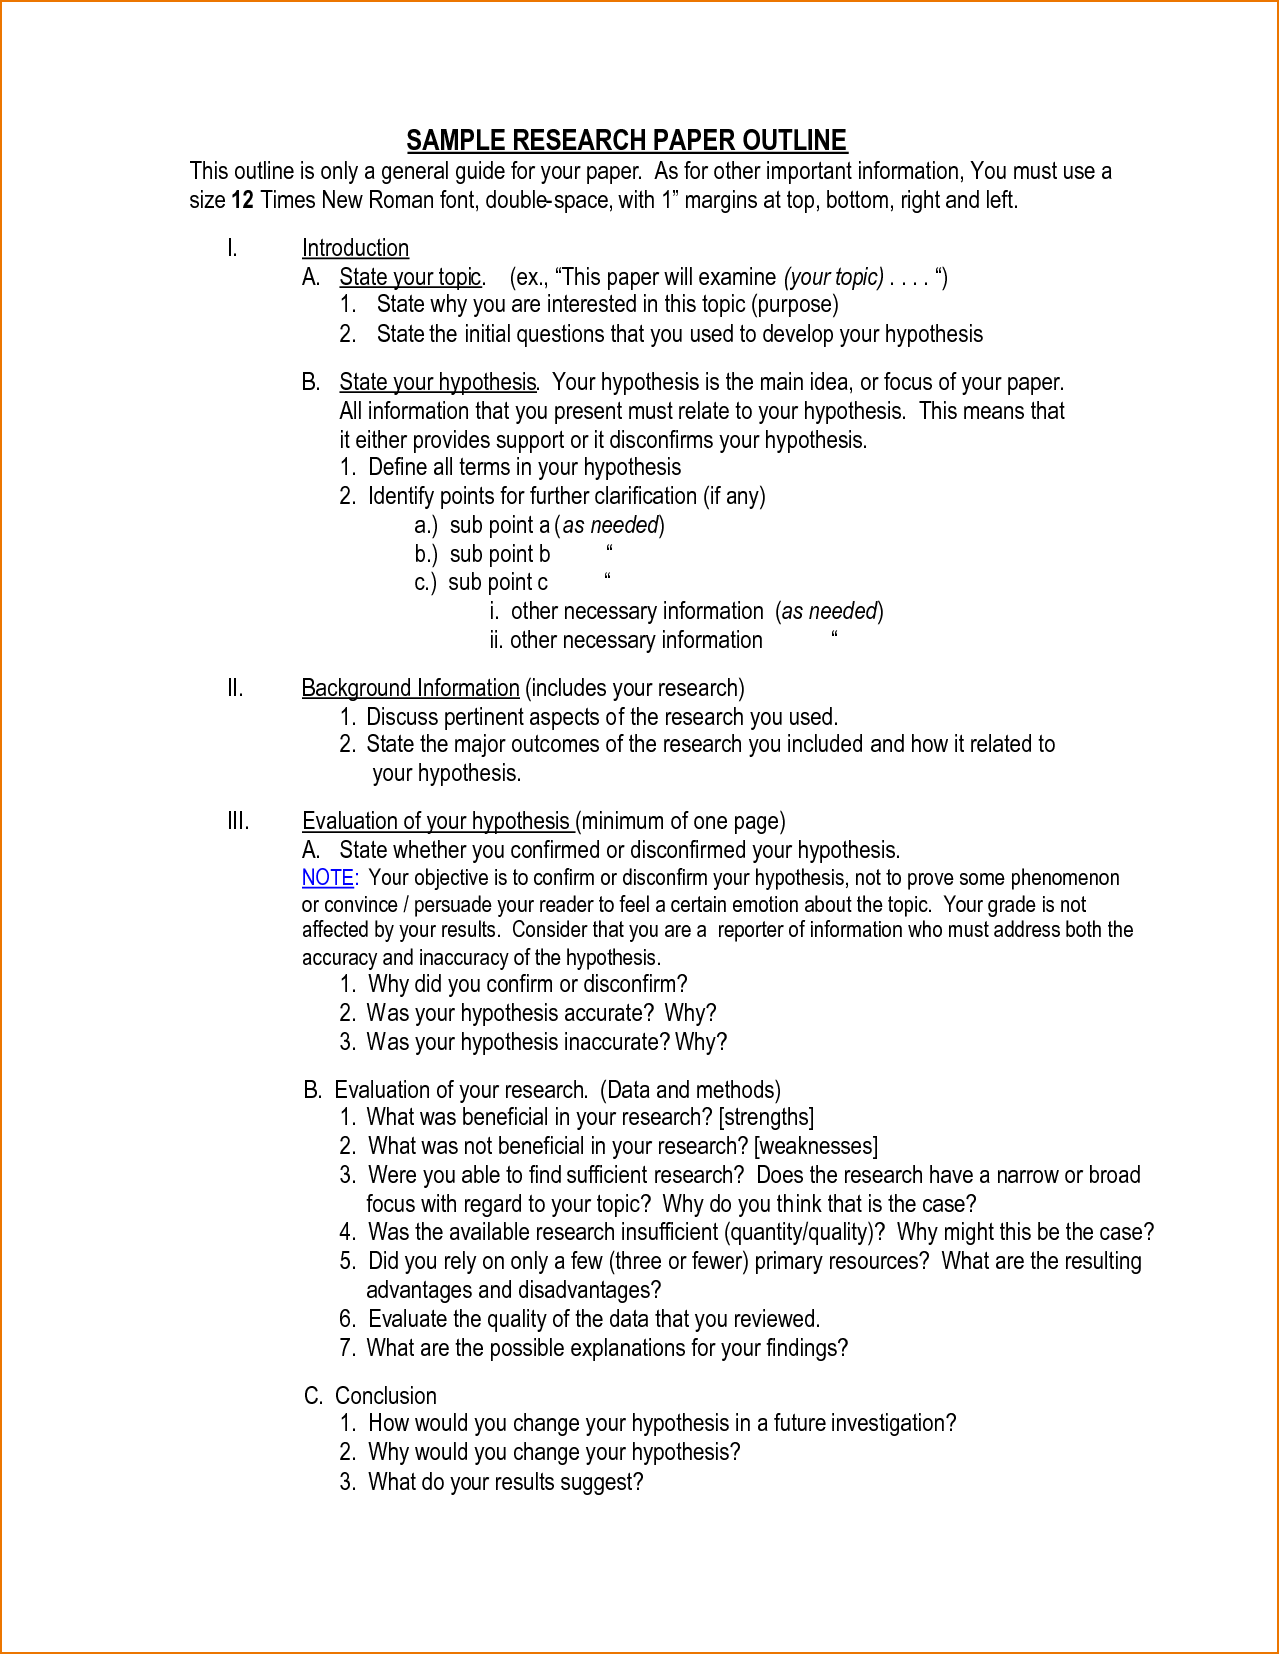 012 Research Paper Outline Template For Outlines Top A Mla On Social Media Full